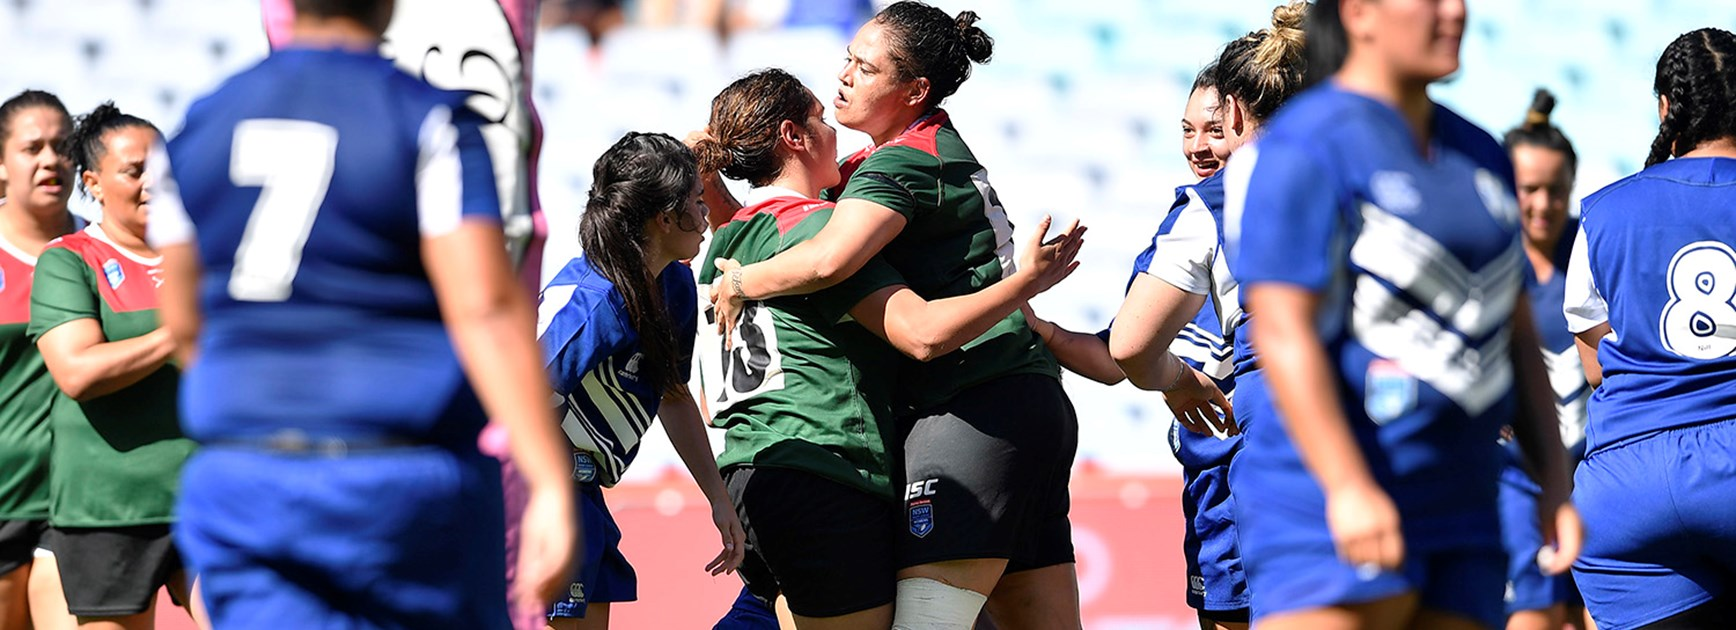 NRL women's ruling 'extremely disappointing' - Solly